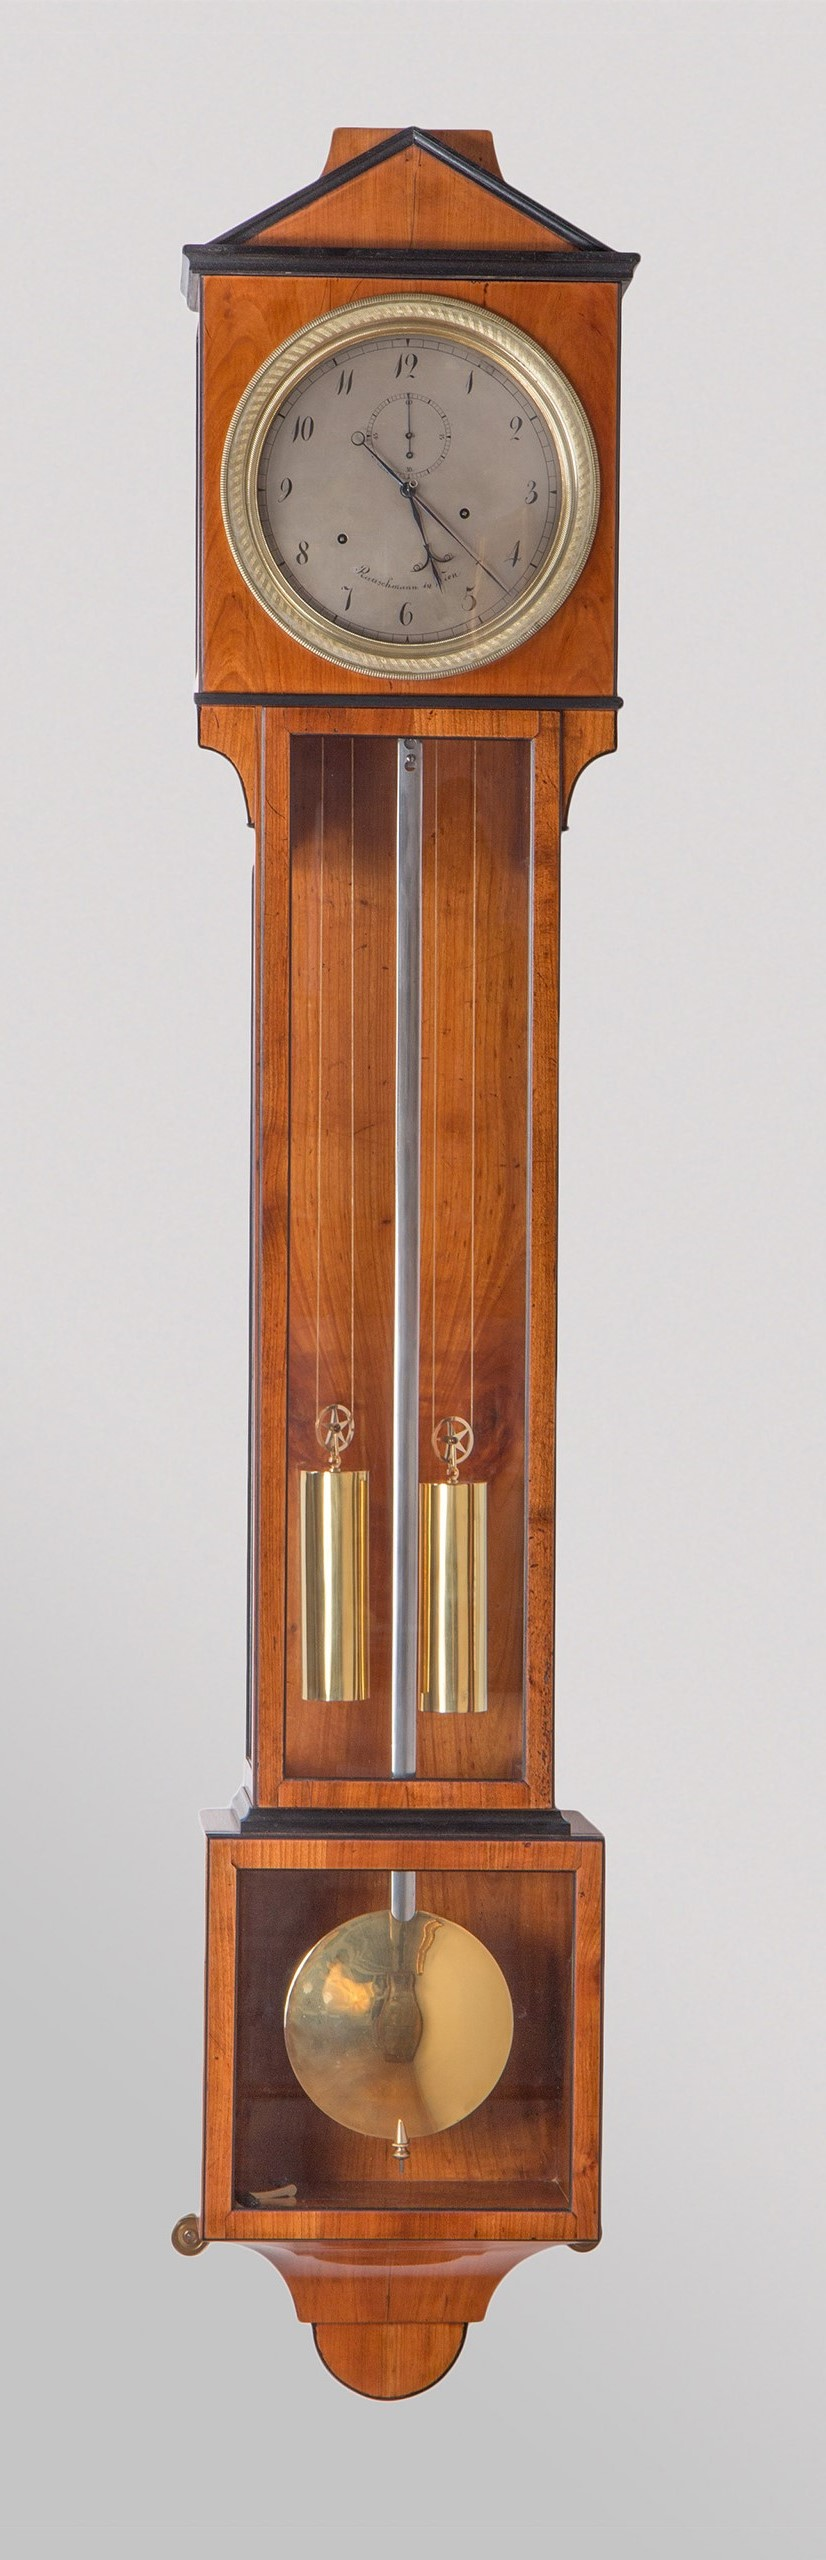 Laterndl clock by Joseph Rauschmann with 8 days duration, c. 1810.